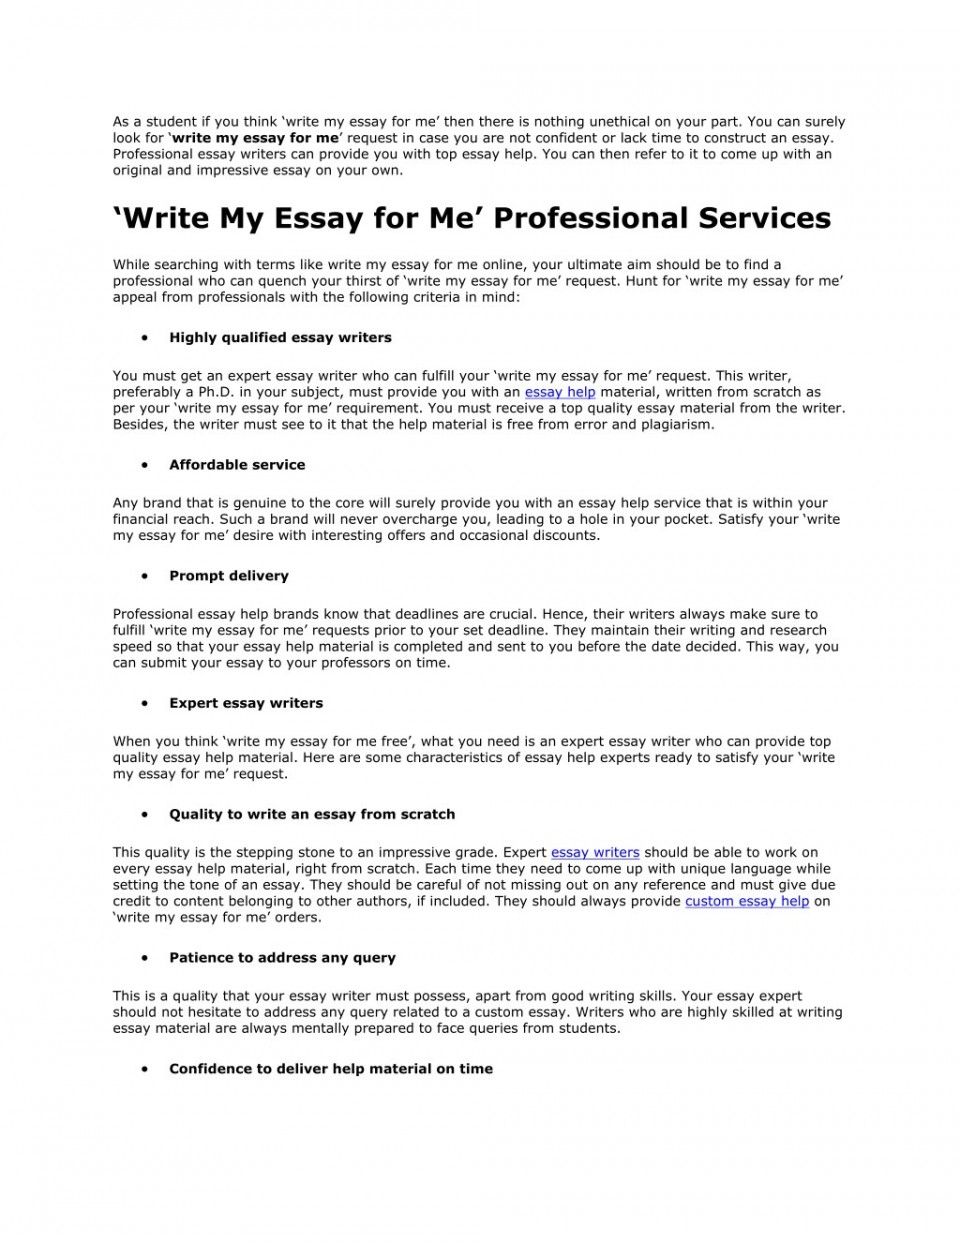 017 Write My Essay For Me Example As Student If You Think Surprising Generator 4 Me.org College Free 960